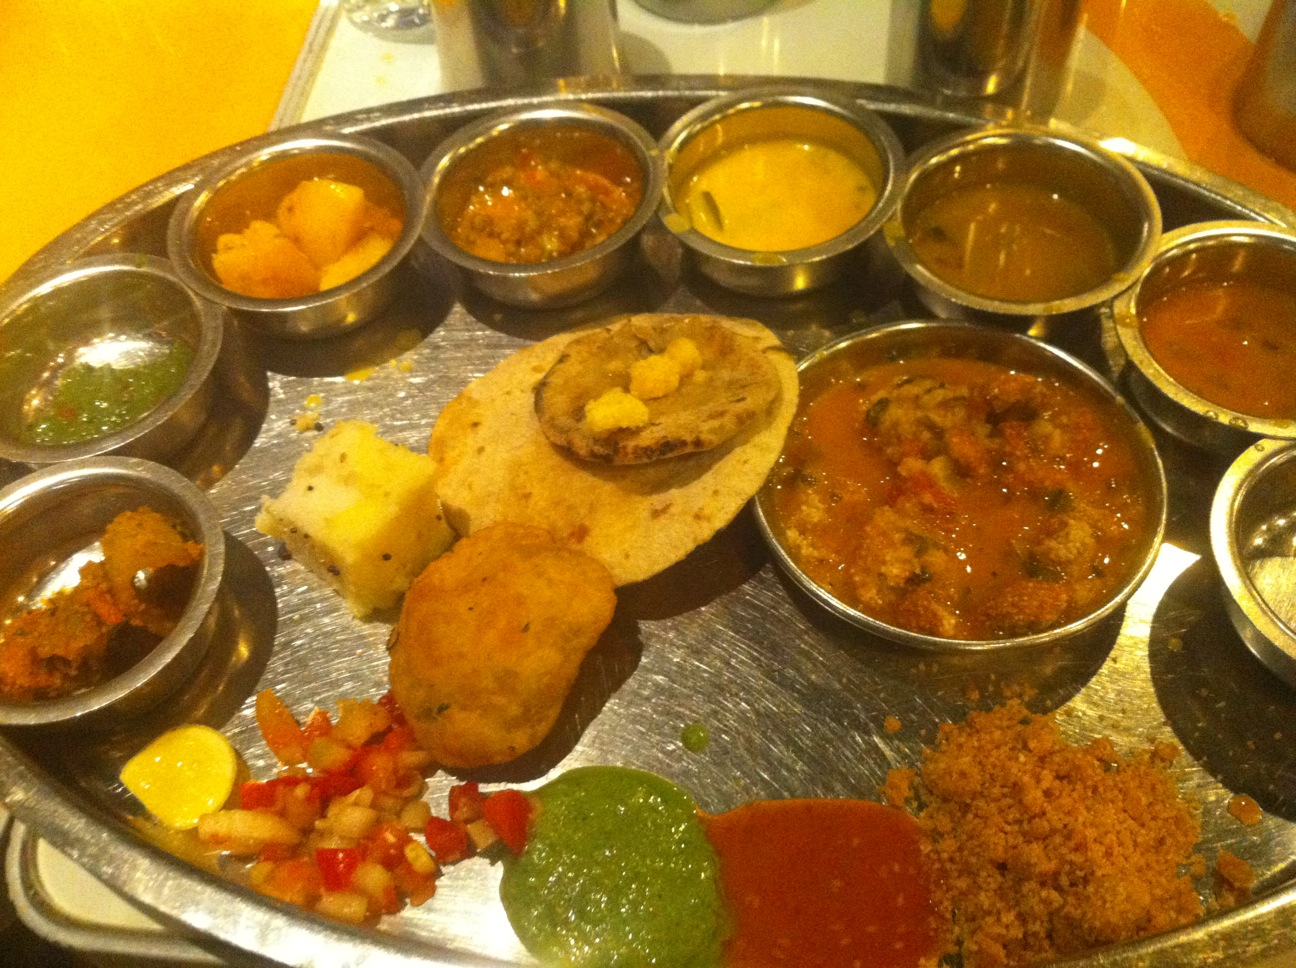 Kaleidoscope: @ rajdhani a place to eat north Indian food